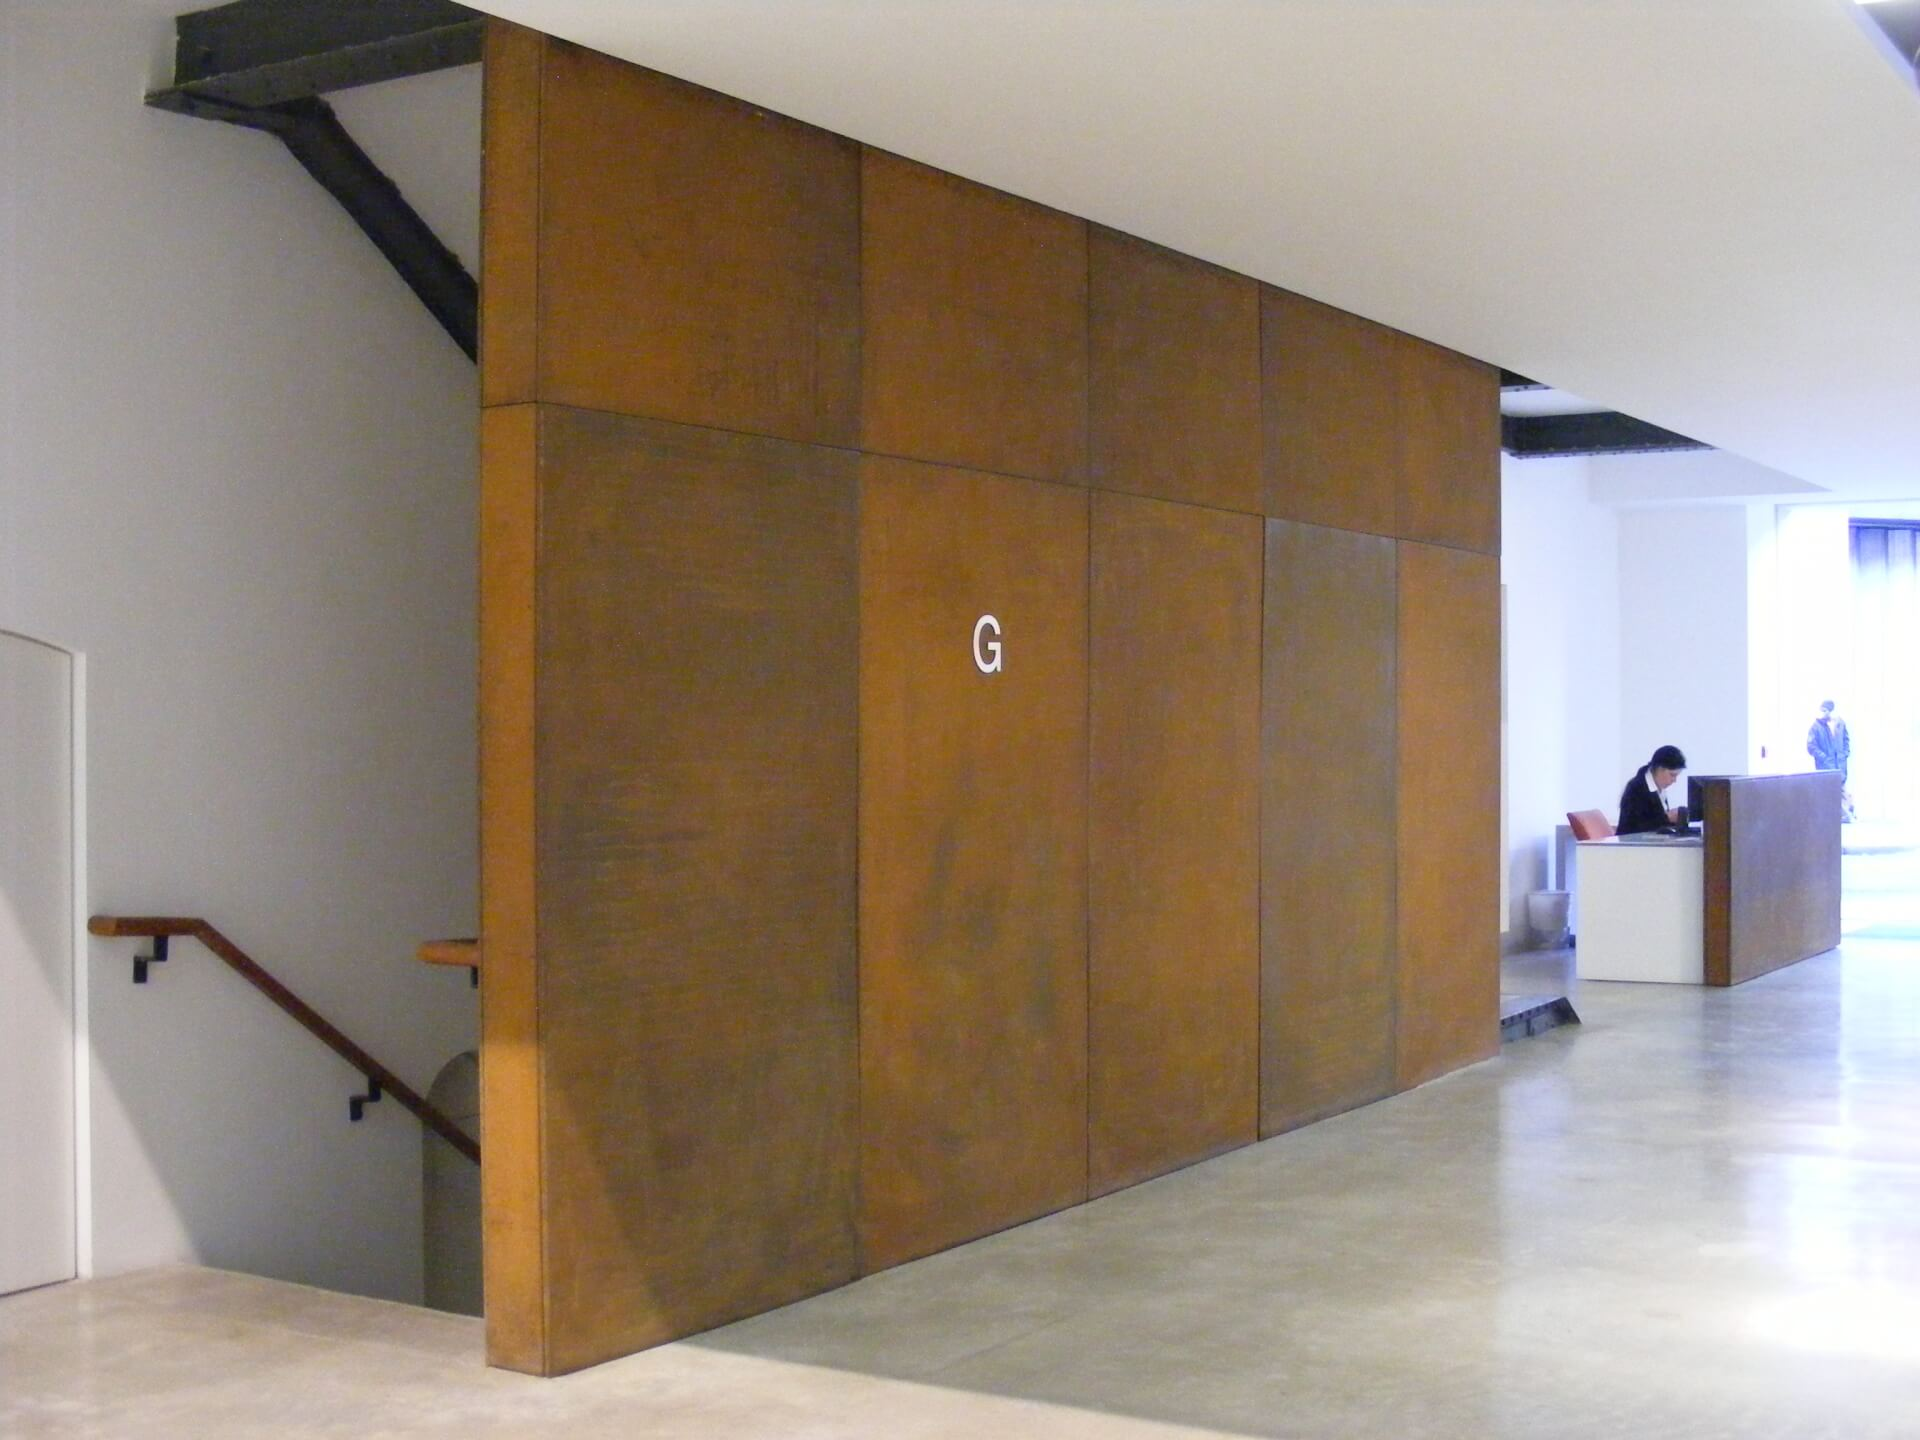 Squire & Partners - Howick Place - Mykon Chillida panels